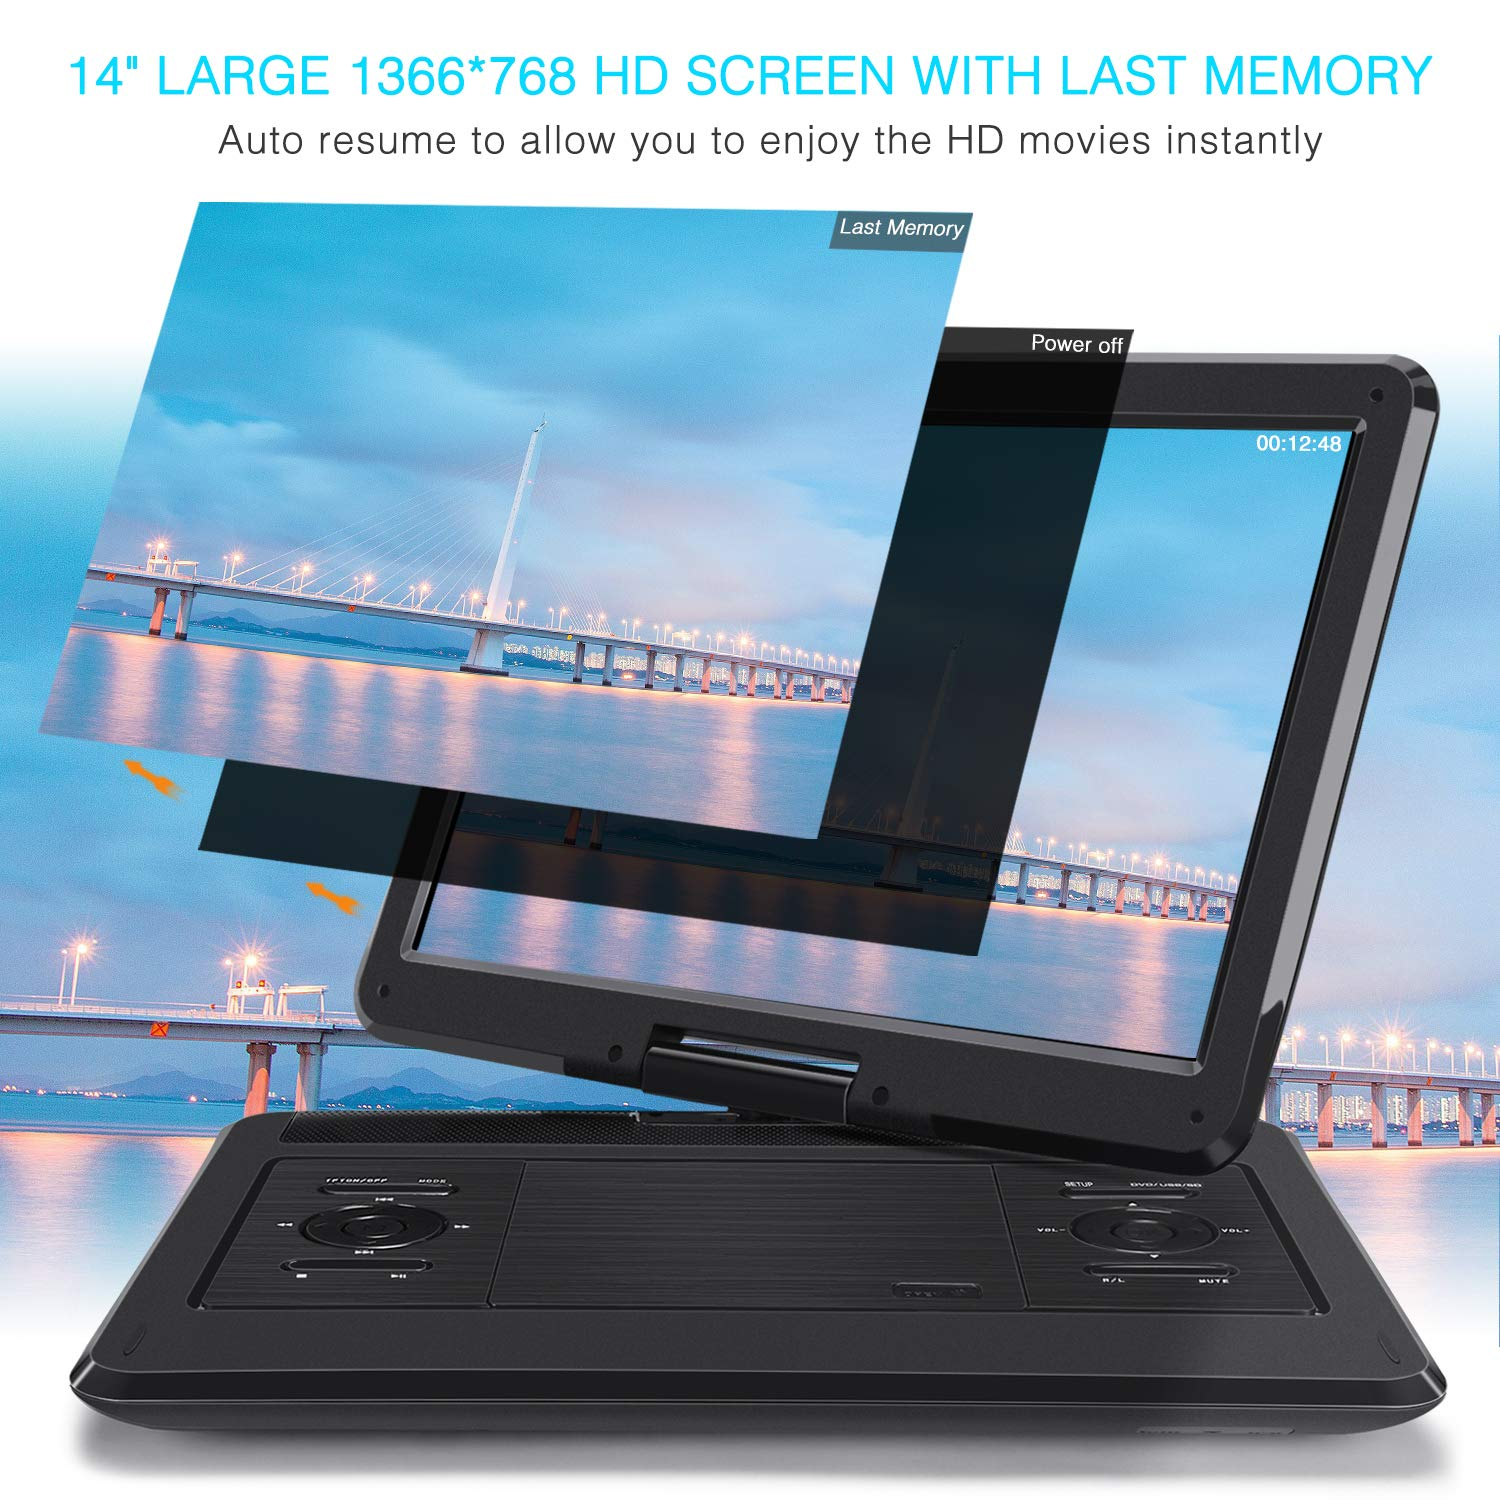 NAVISKAUTO 14'' Portable DVD Player with 6-7 Hours Rechargeable Battery, 270 Degrees Swivel Screen 1366X768, 9.84ft Car Charger/Wall Charger, Support USB/SD Card Playback, Region Free by NAVISKAUTO (Image #3)